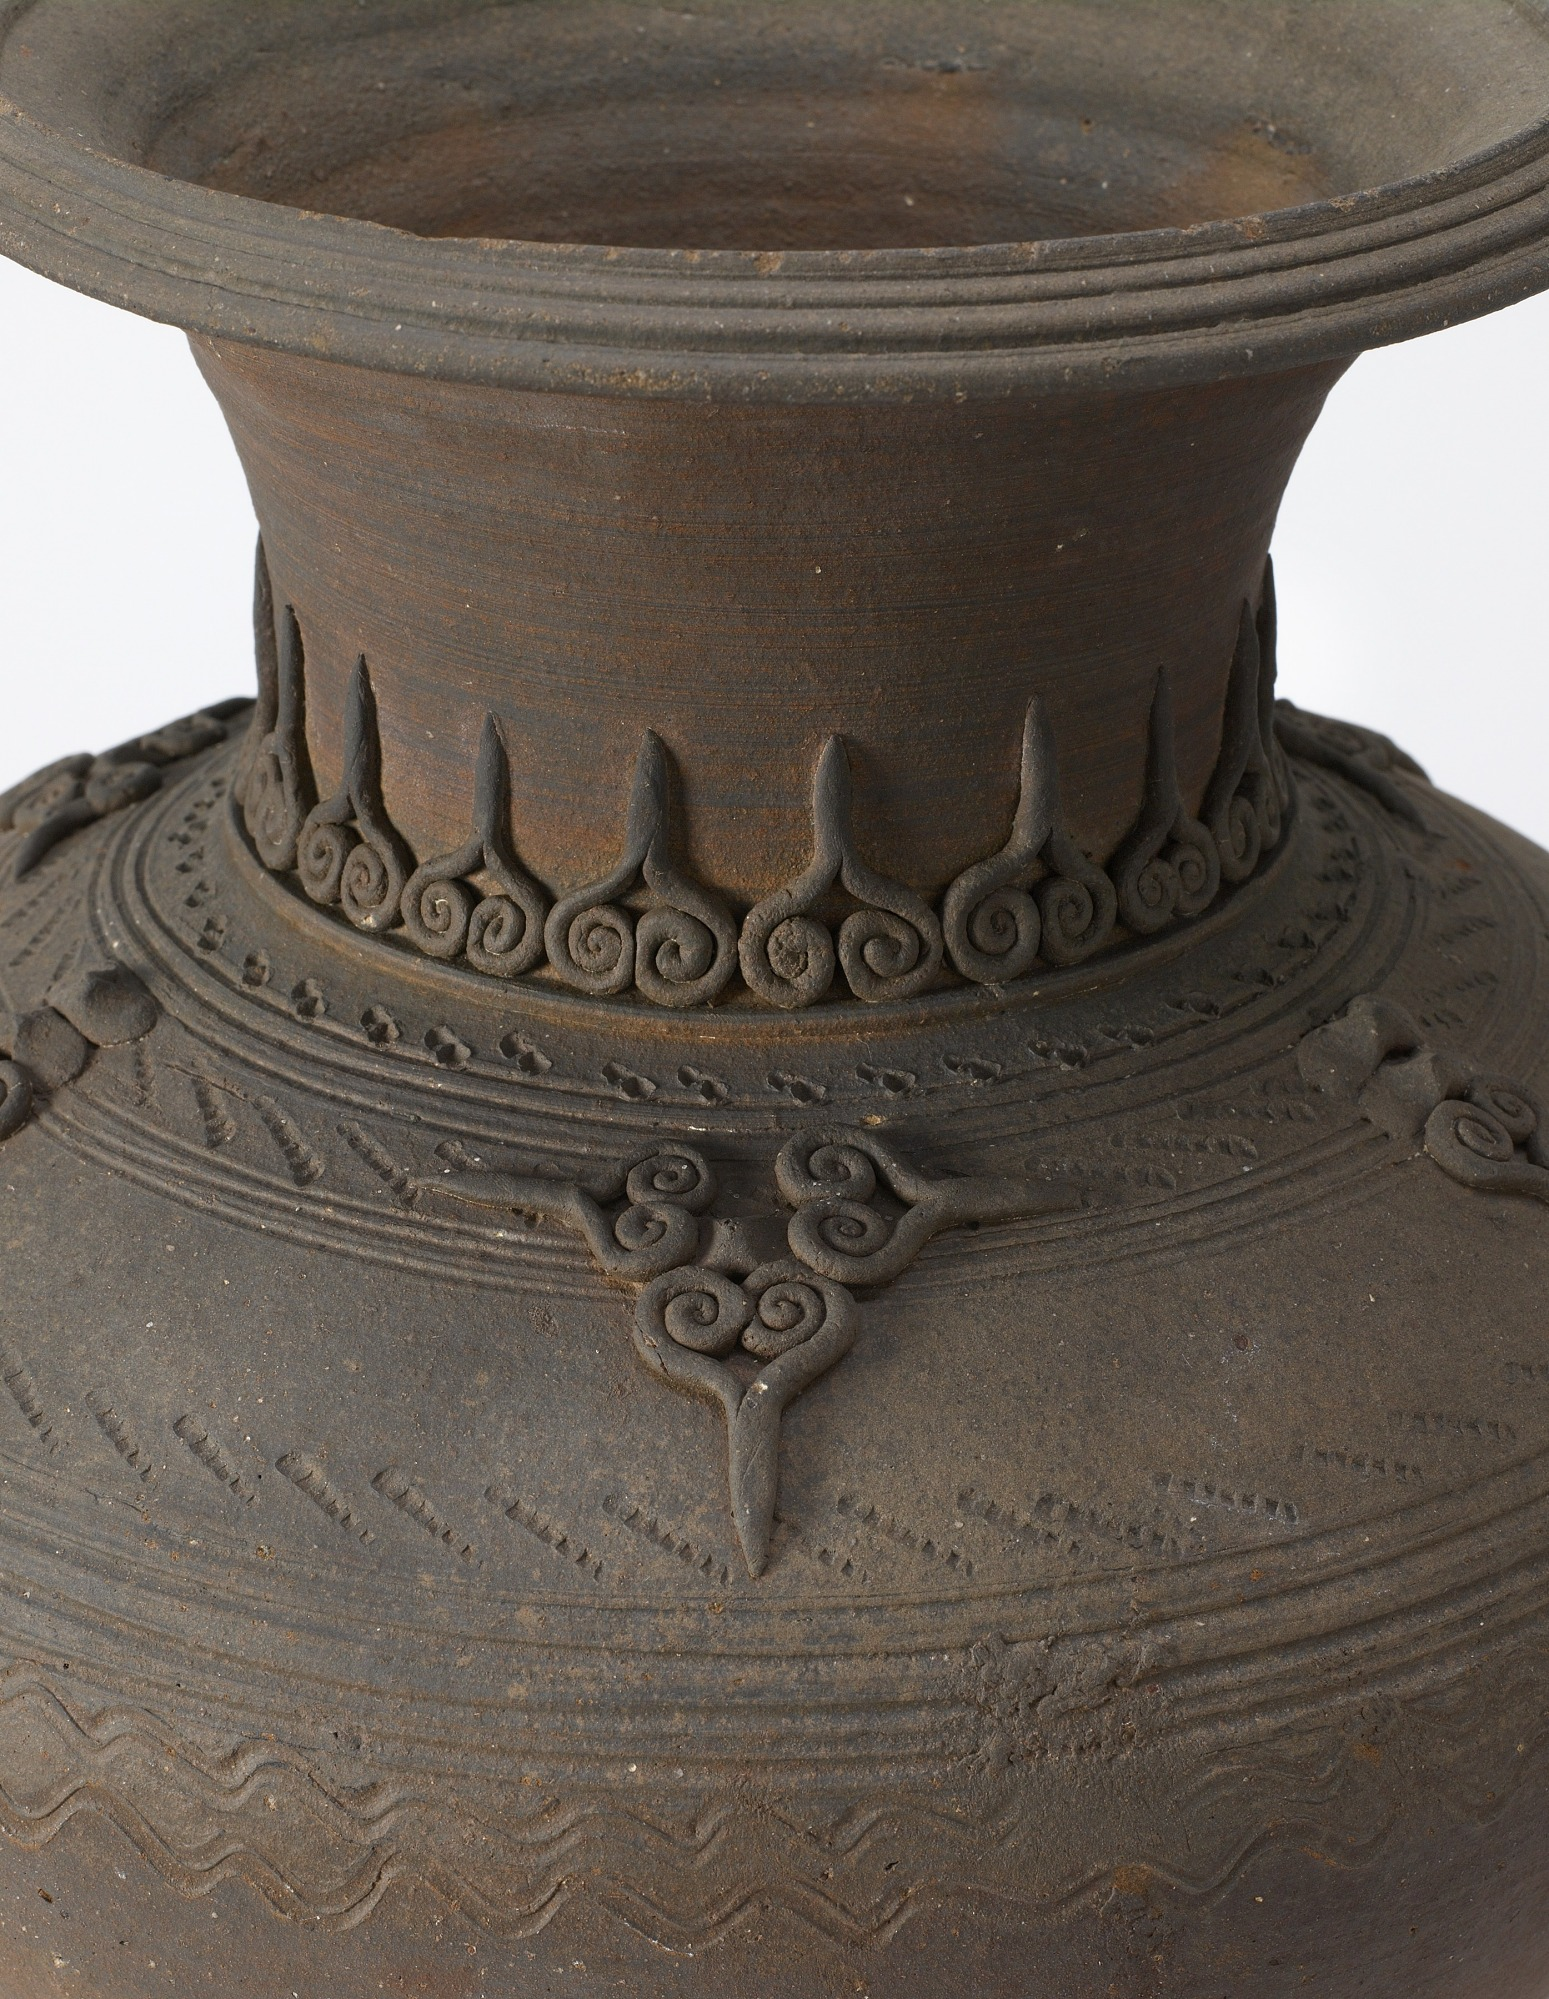 : Jar with incised and applied decoration